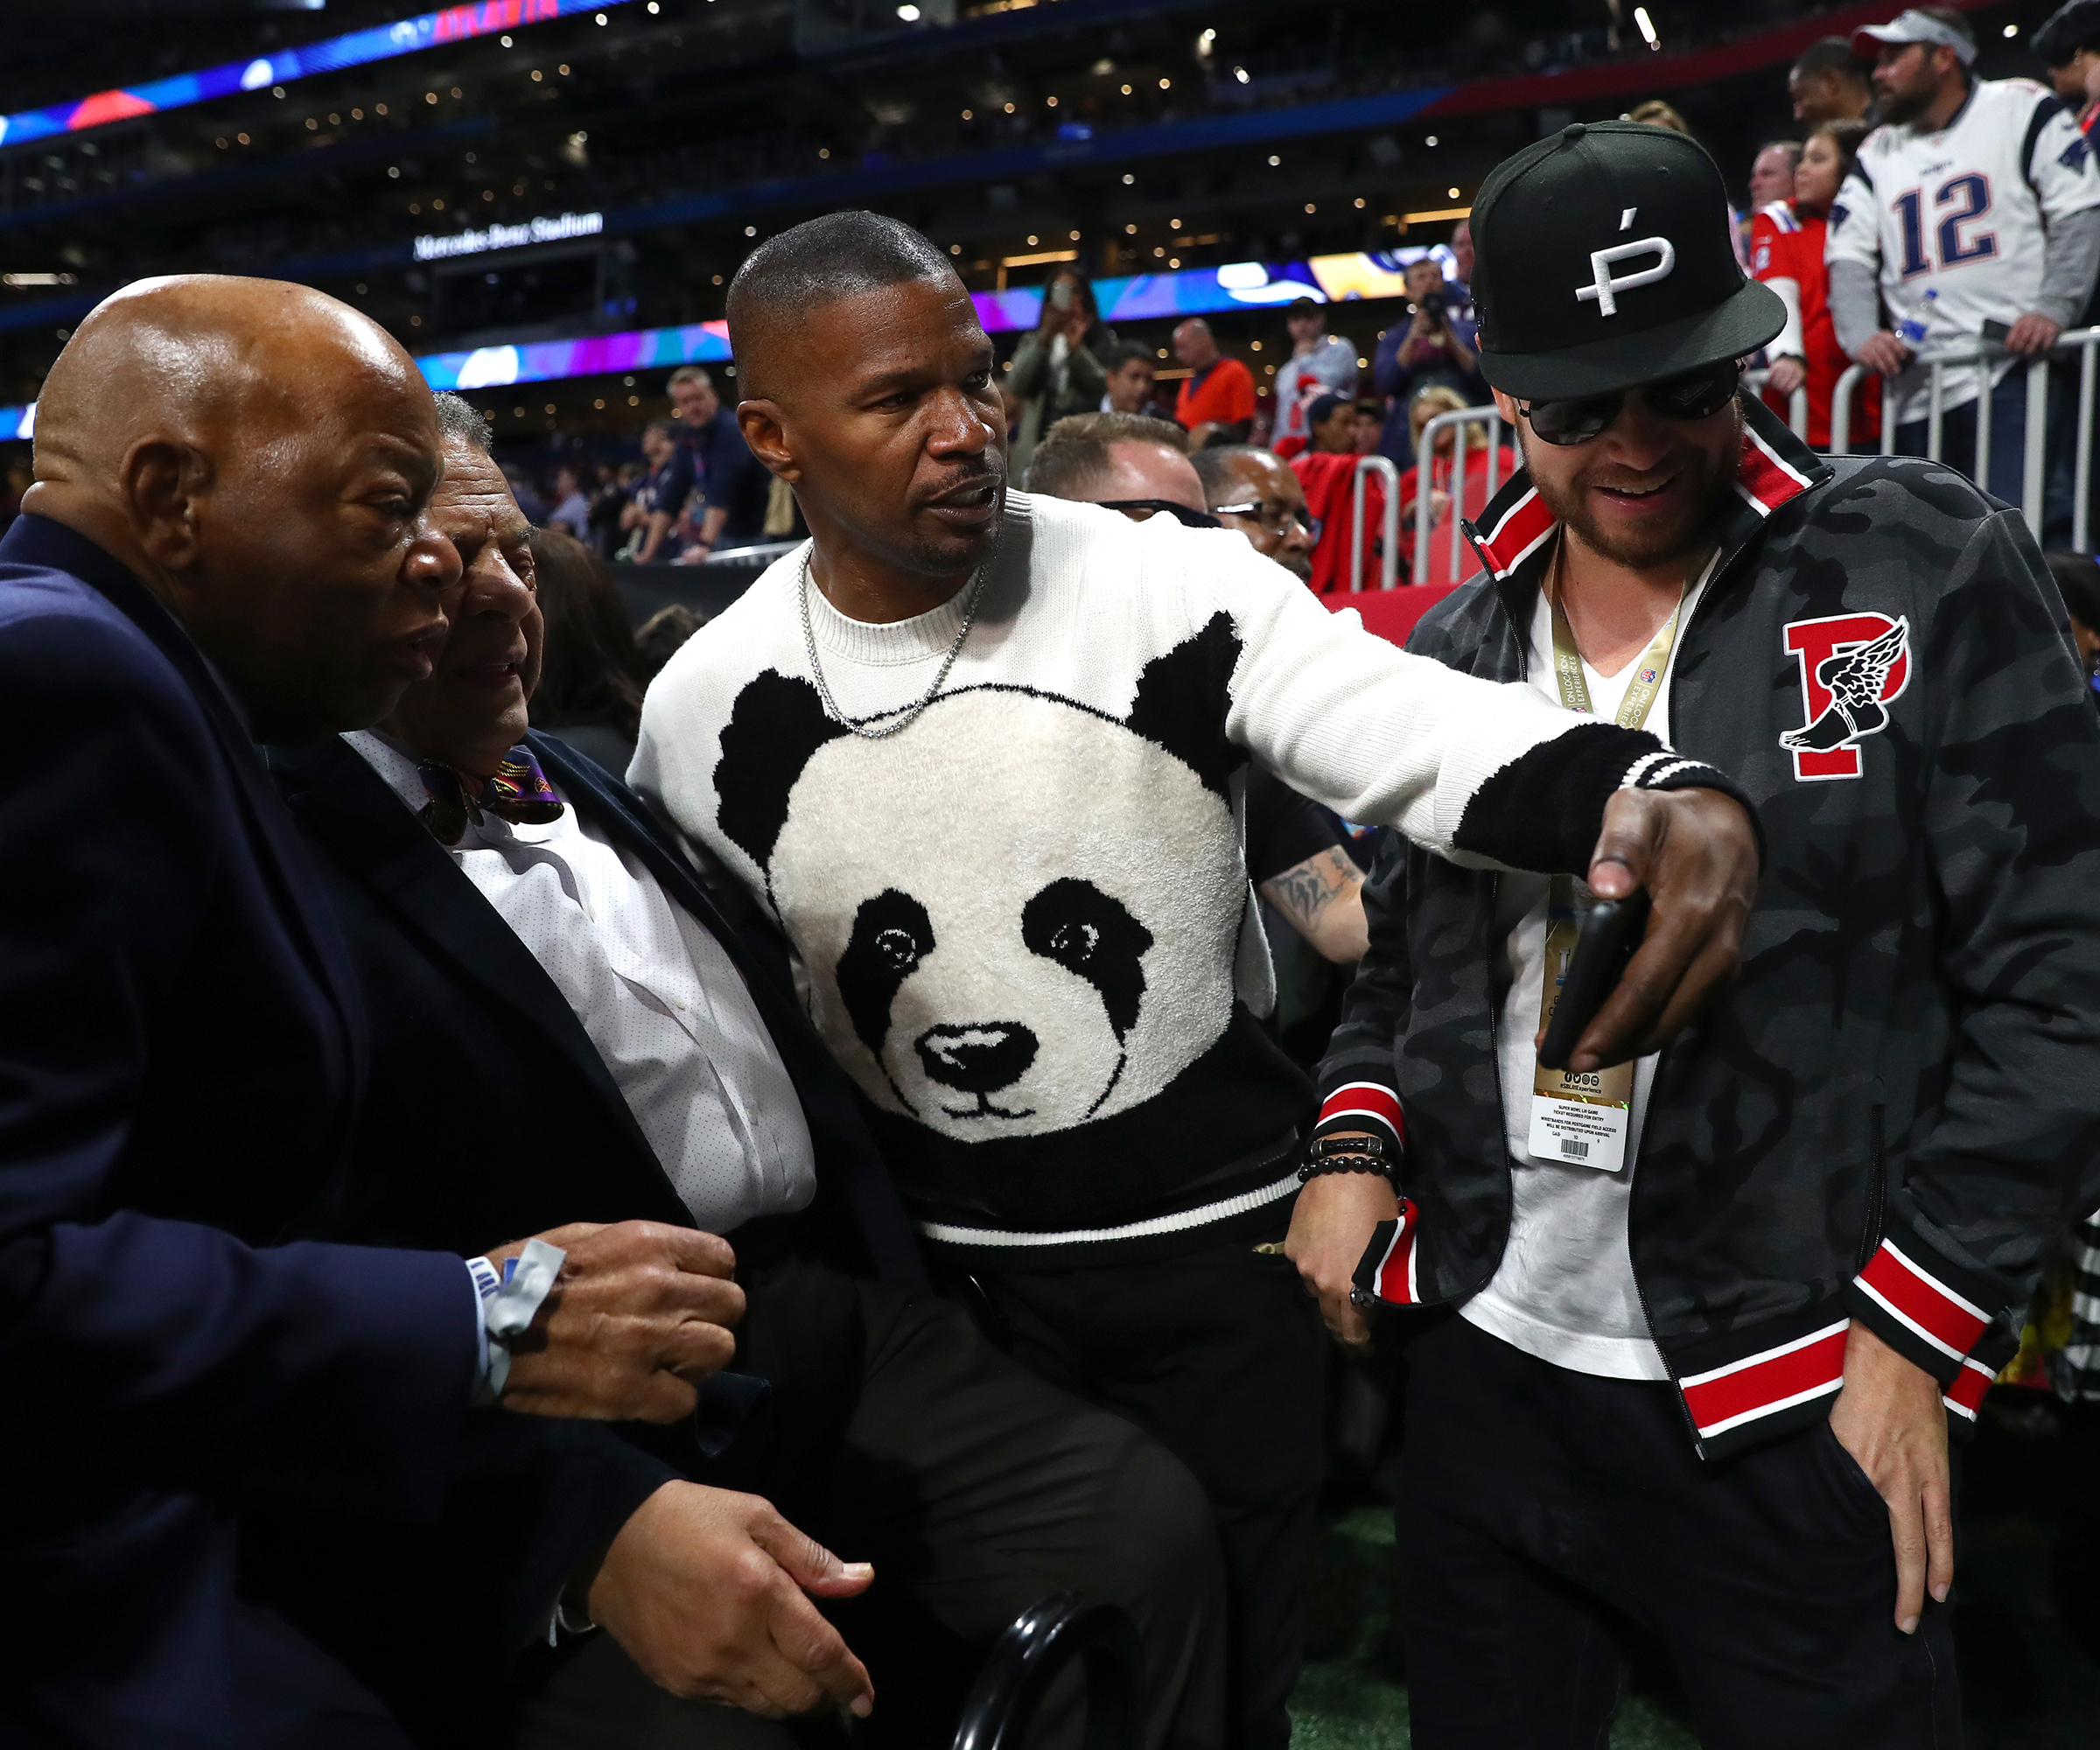 Jamie Foxx is seen prior to Super Bowl LIII between the Los Angeles Rams and the New England Patriots at Mercedes Benz Stadium in Atlanta, Georgia, on Feb. 3, 2019.